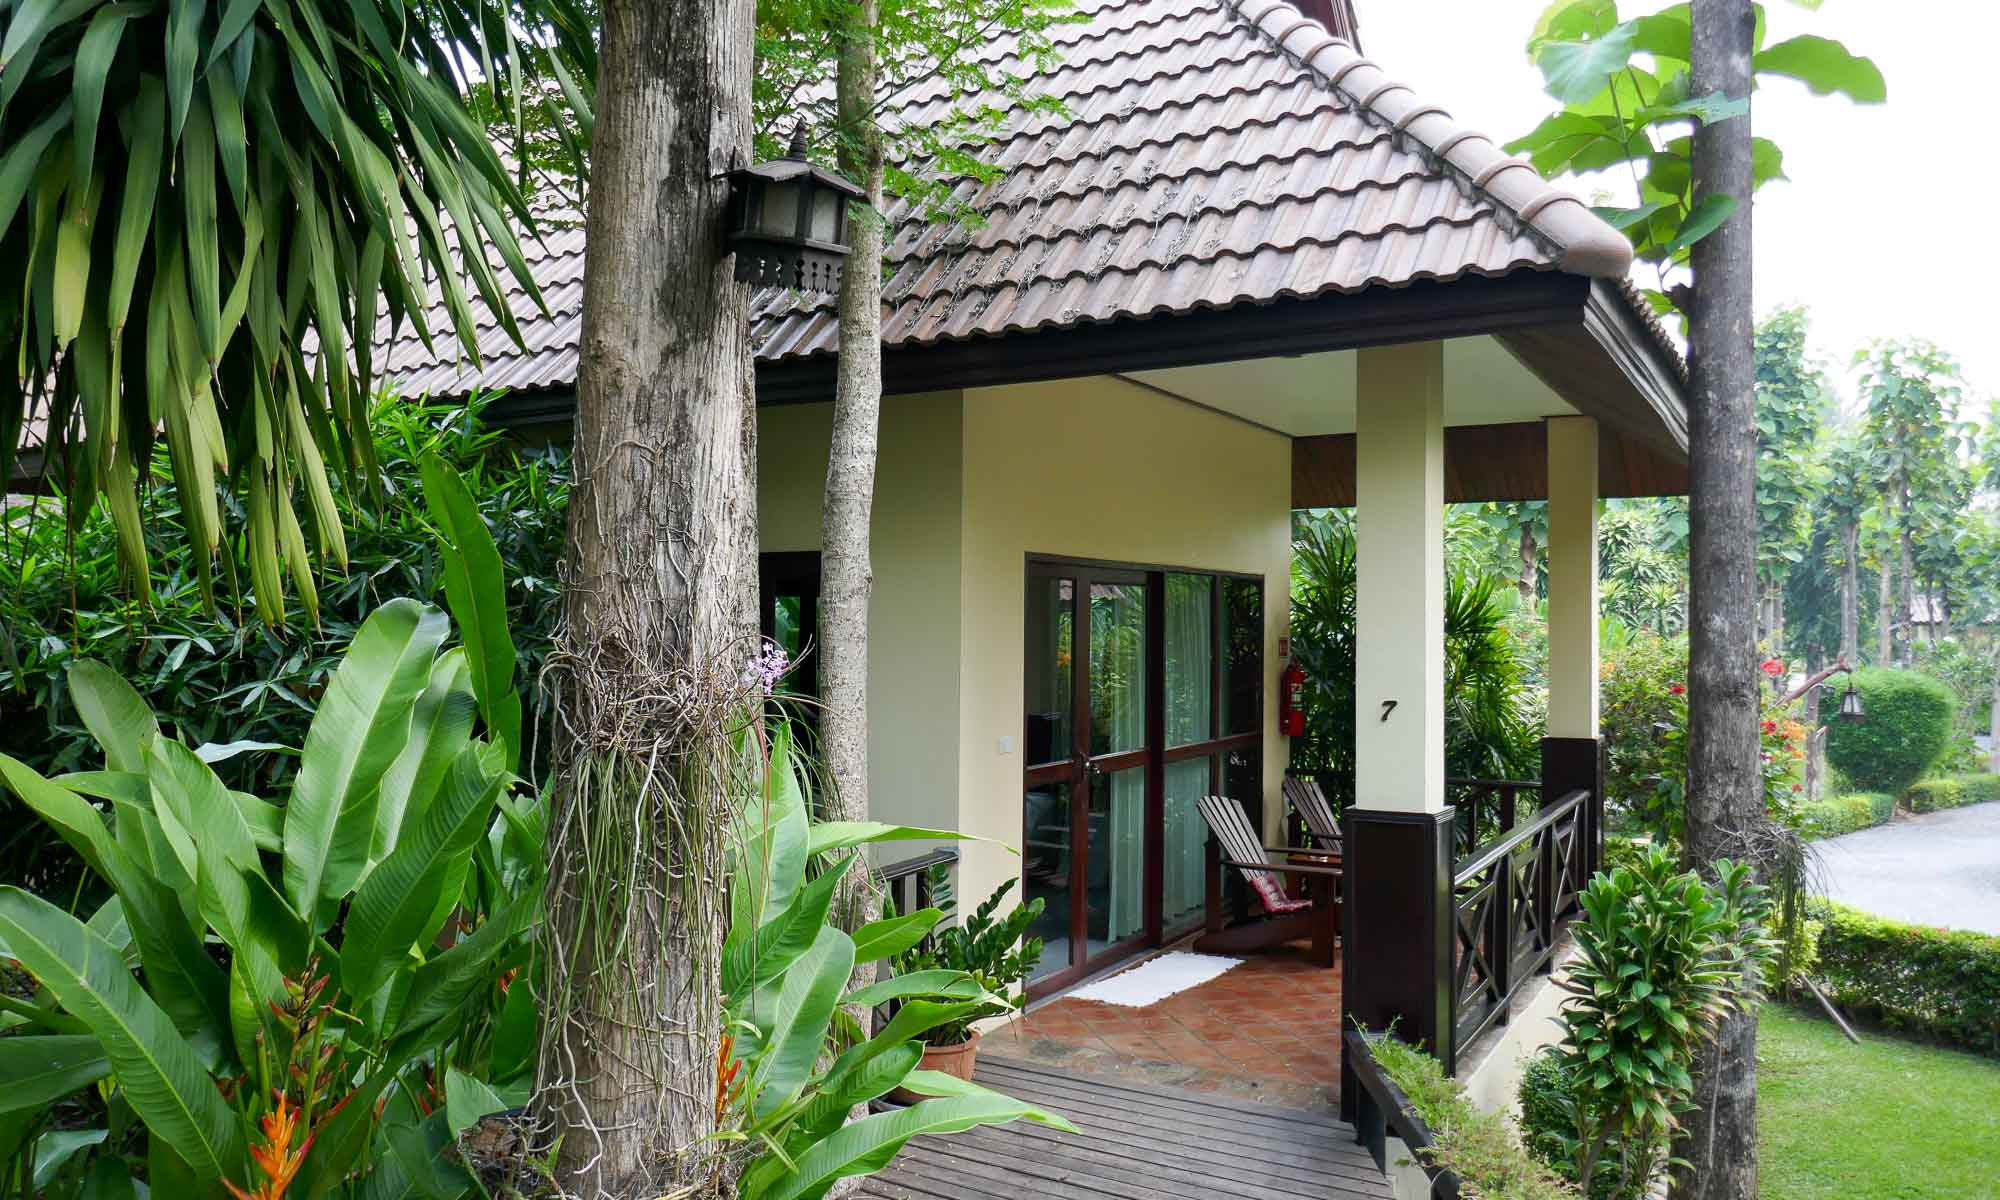 Our home for 3 days at Oriental Kwai Resort